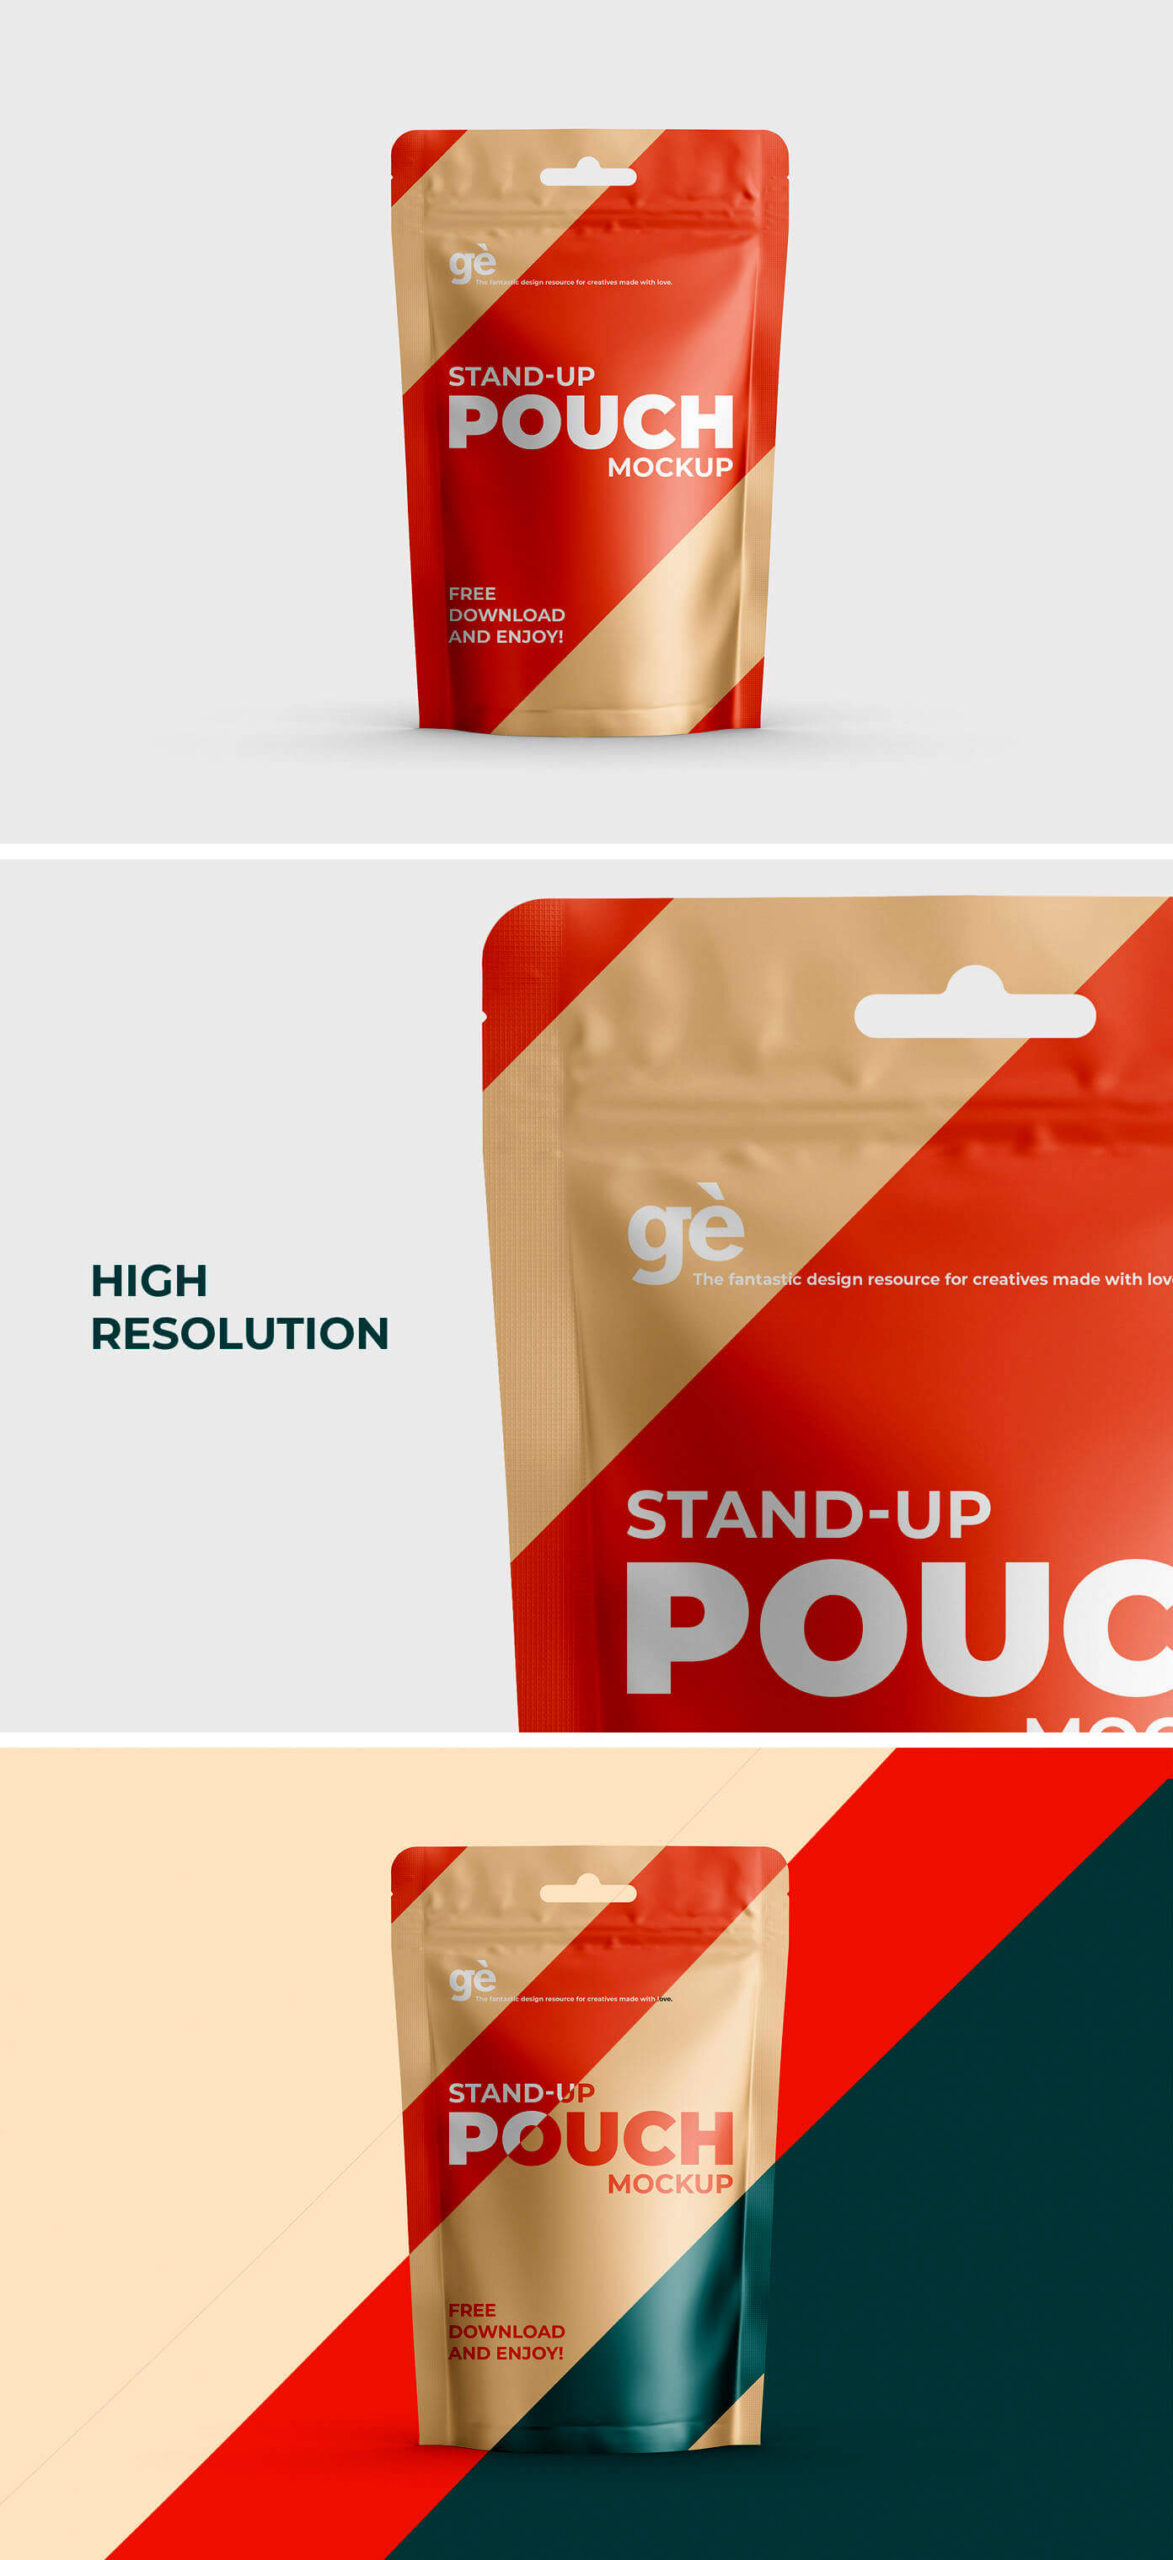 Free Stand-up Pouch Packaging Mockup PSD Template1